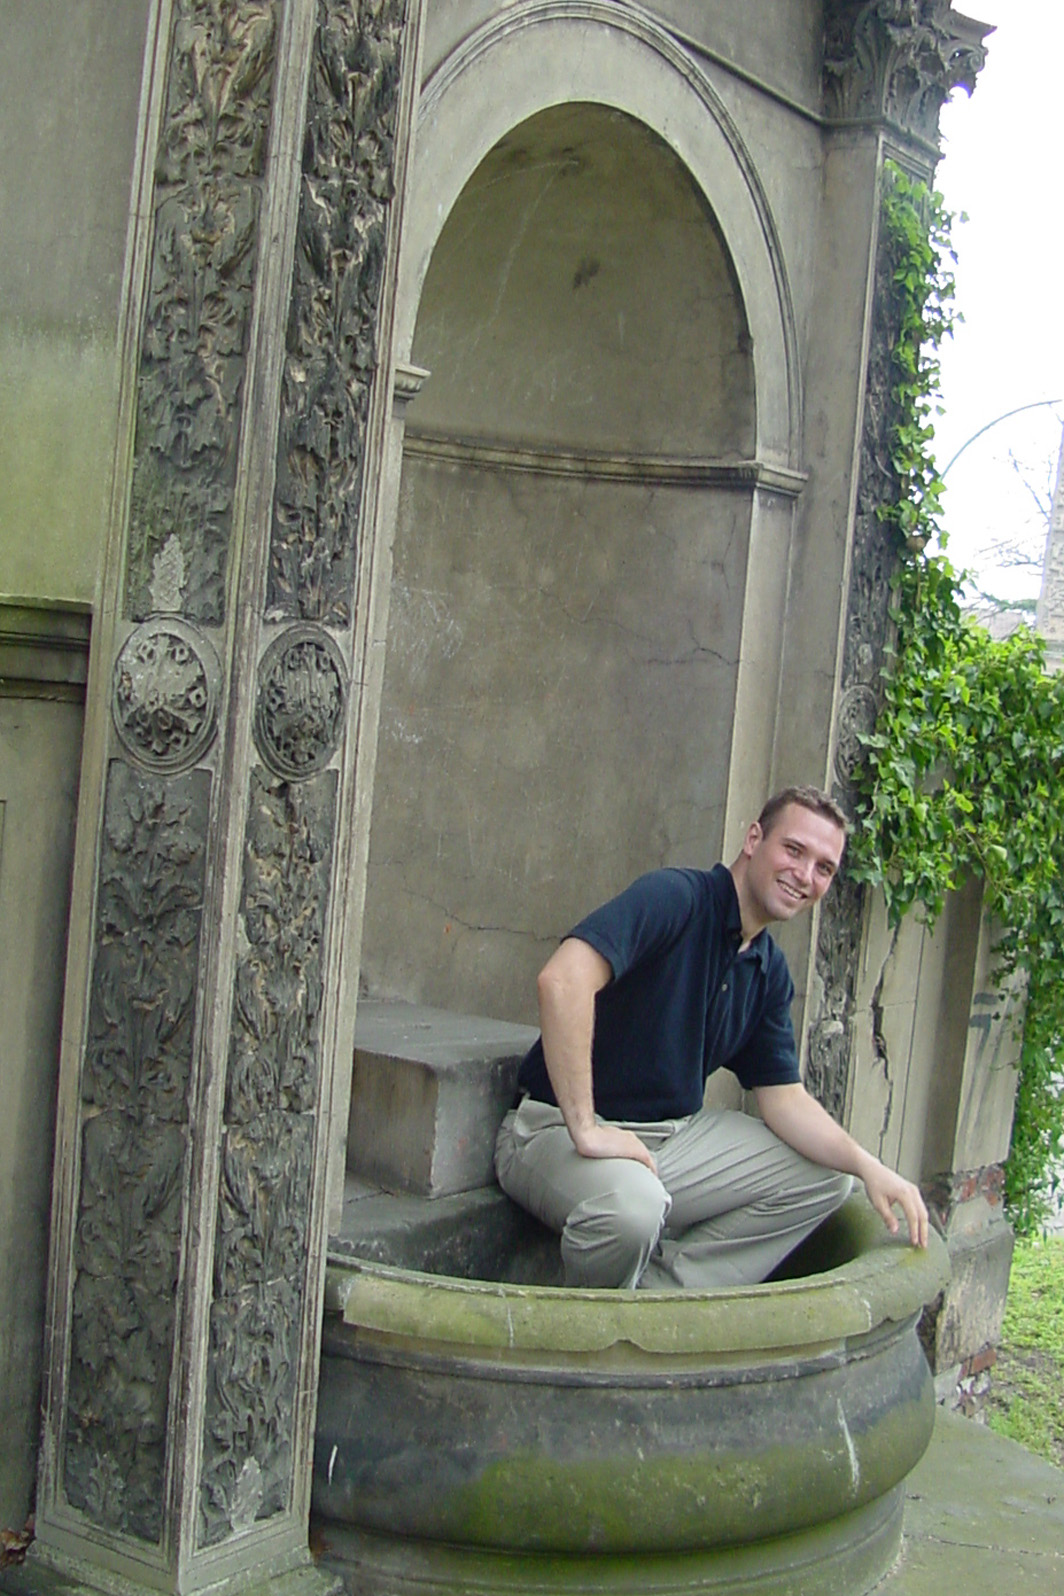 INSPECTED THE FOUNTAIN AT POTSDAM